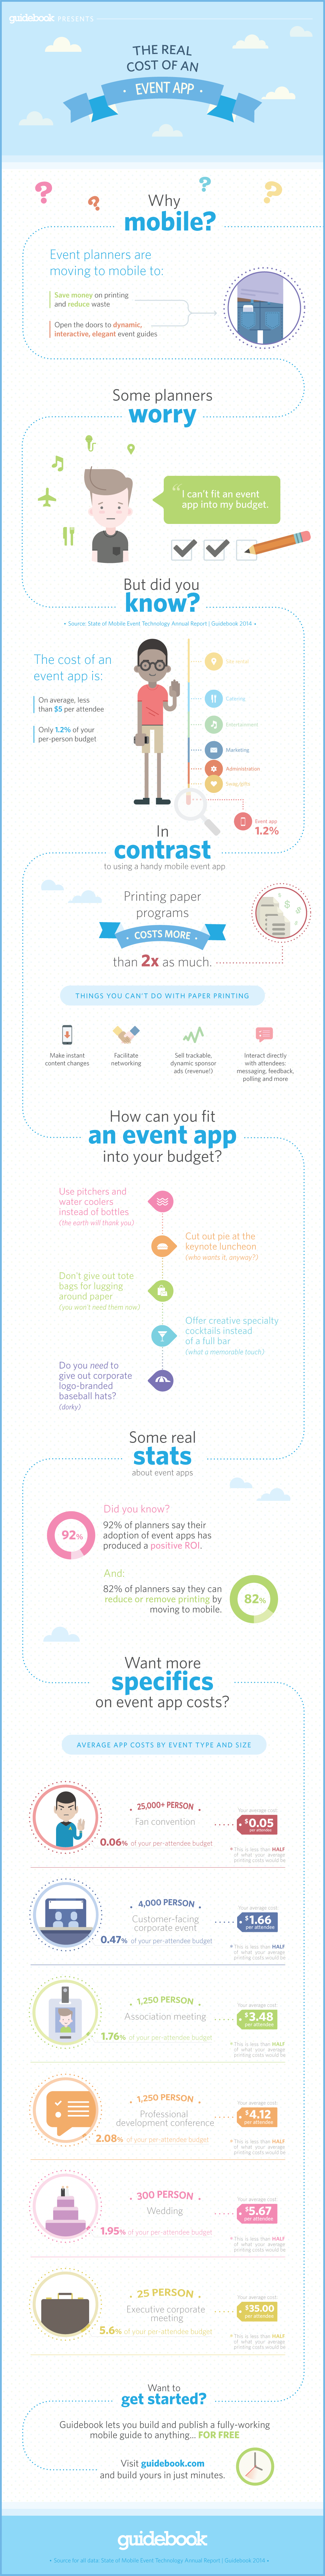 Event App Cost Infographic